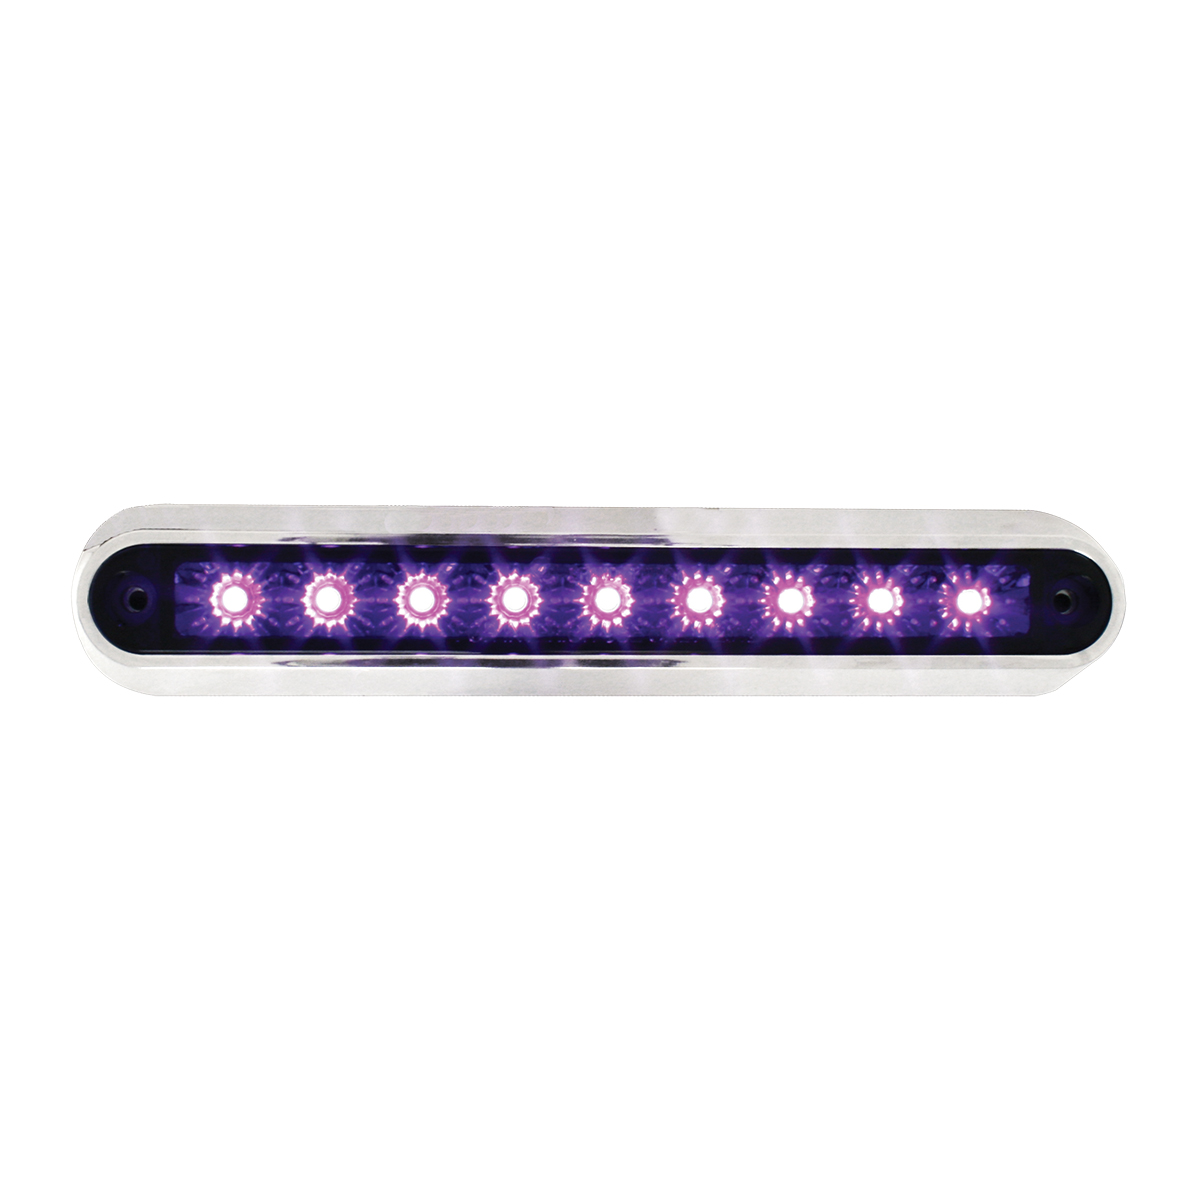 "76097 6.5"" Surface Mount LED Light Bar w/ Chrome Plastic Base"